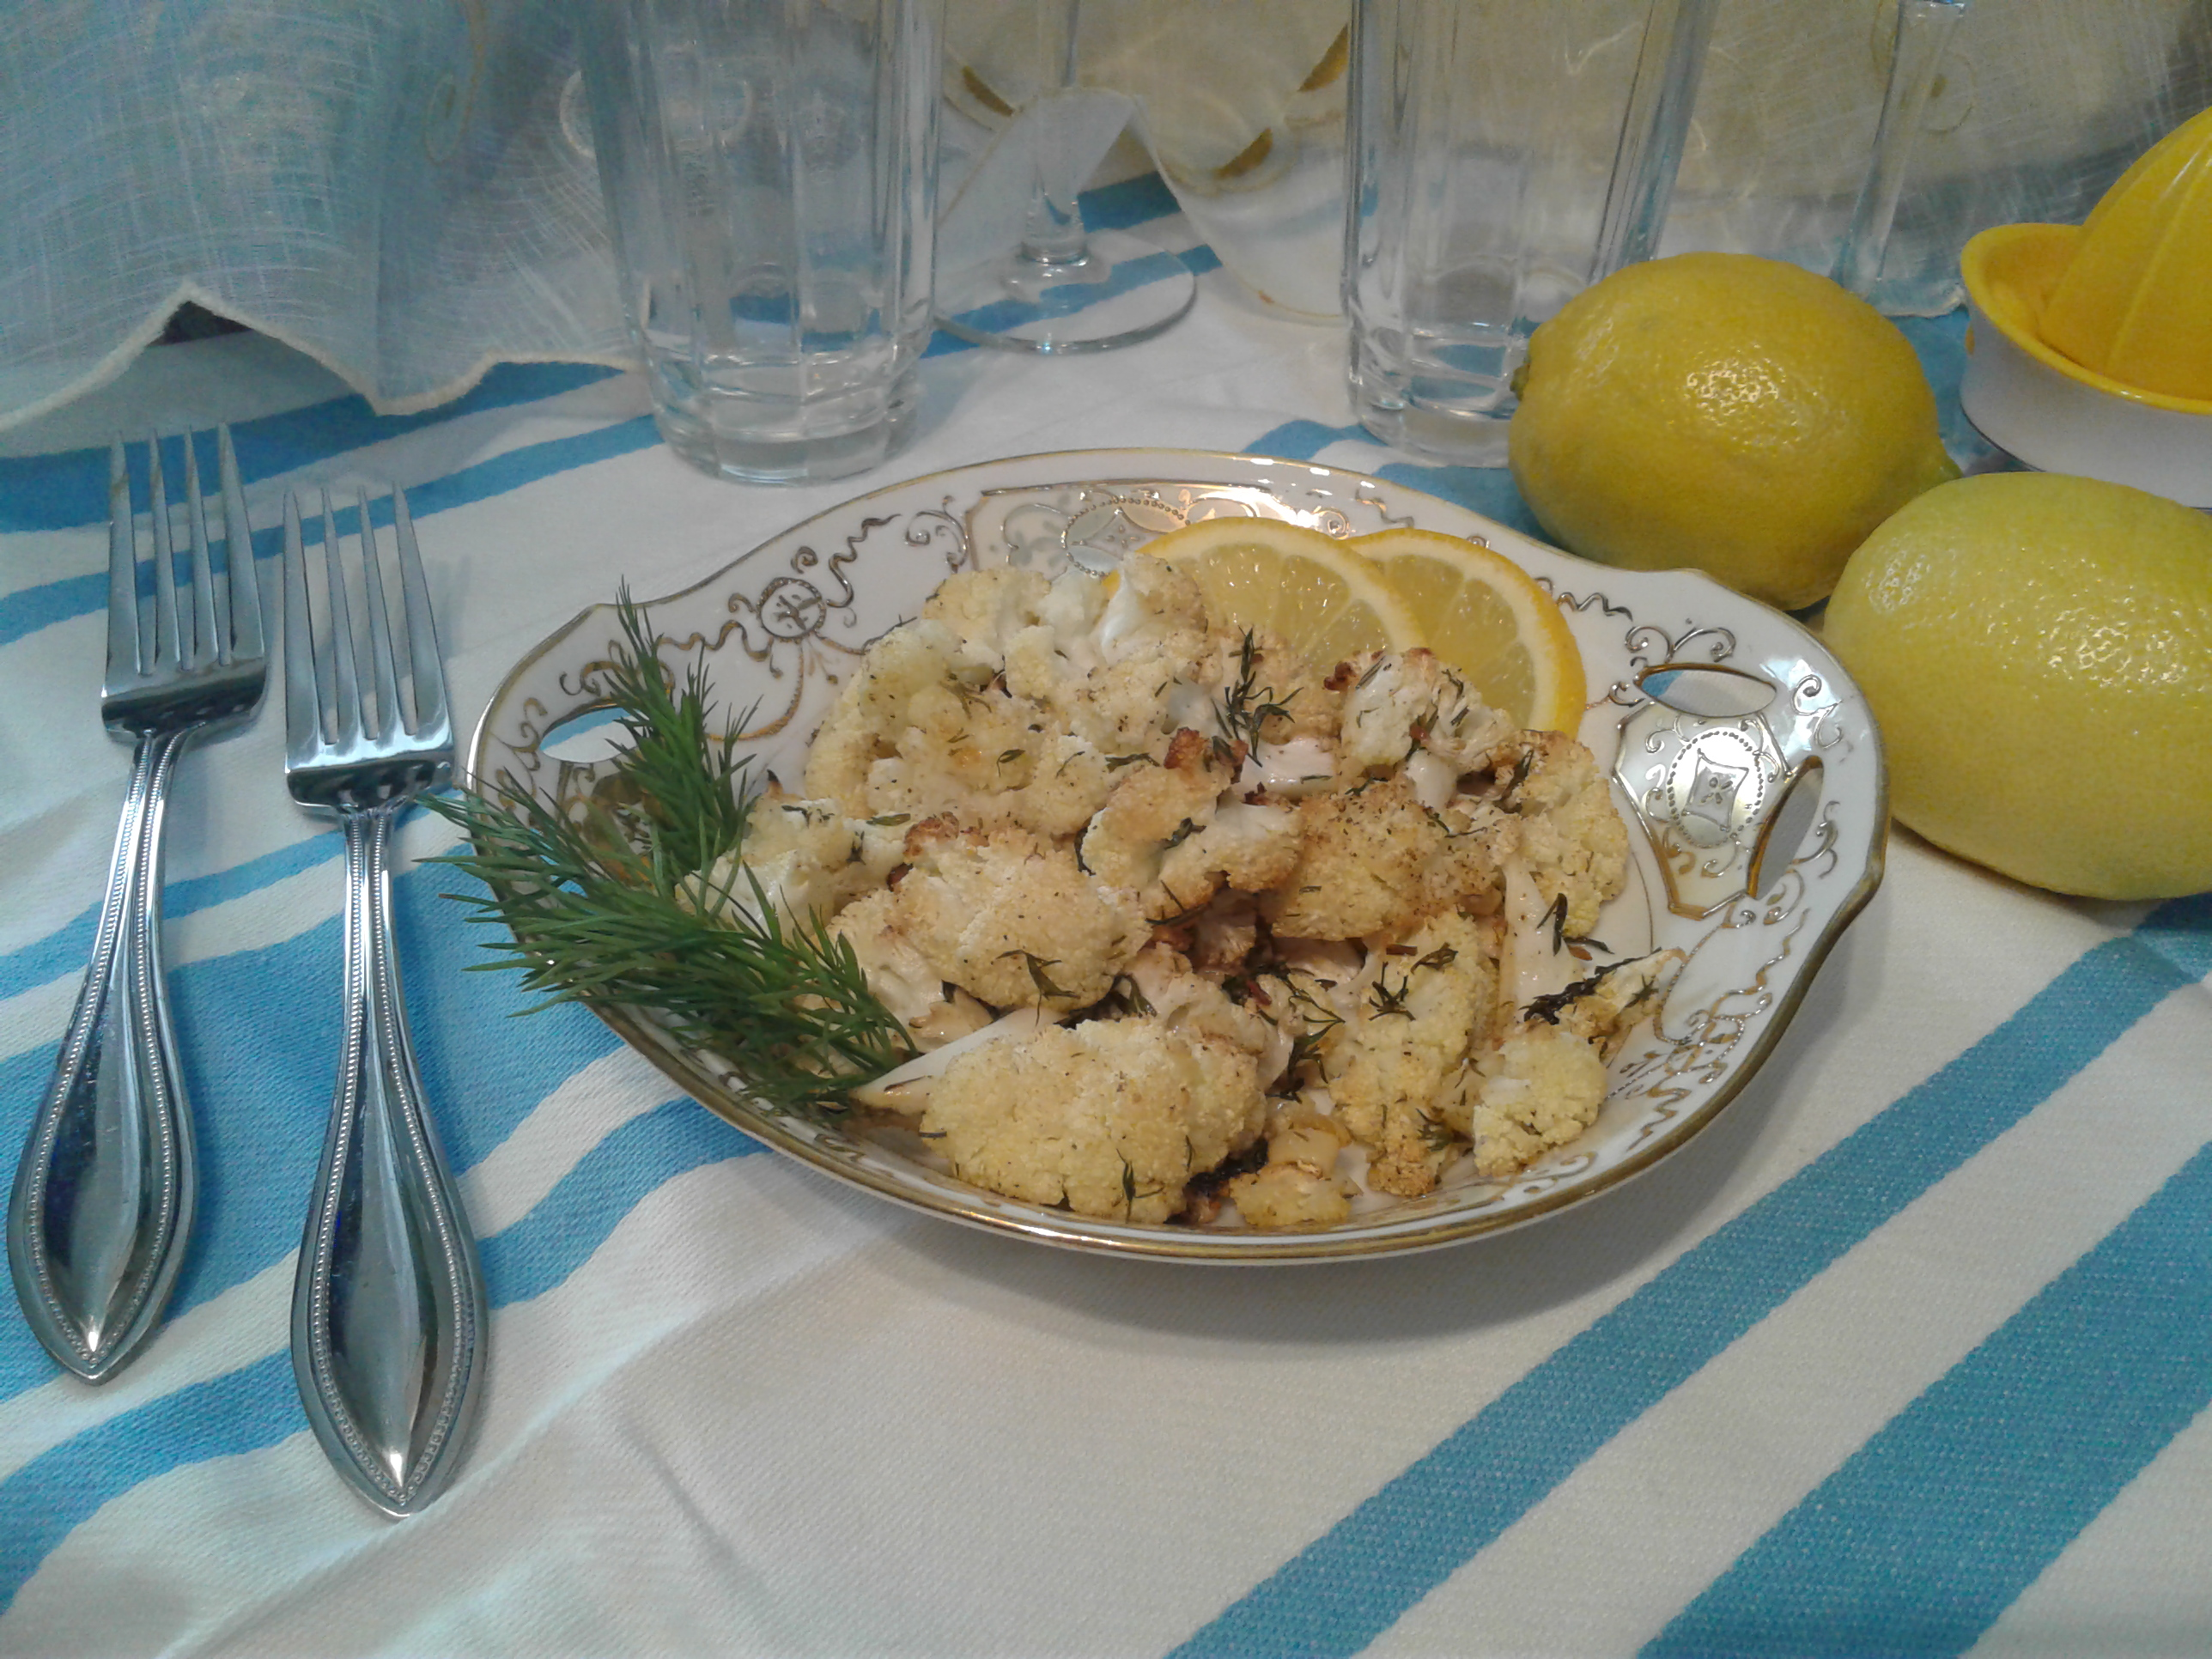 Roasted cauliflower with lemon, garlic, and dill